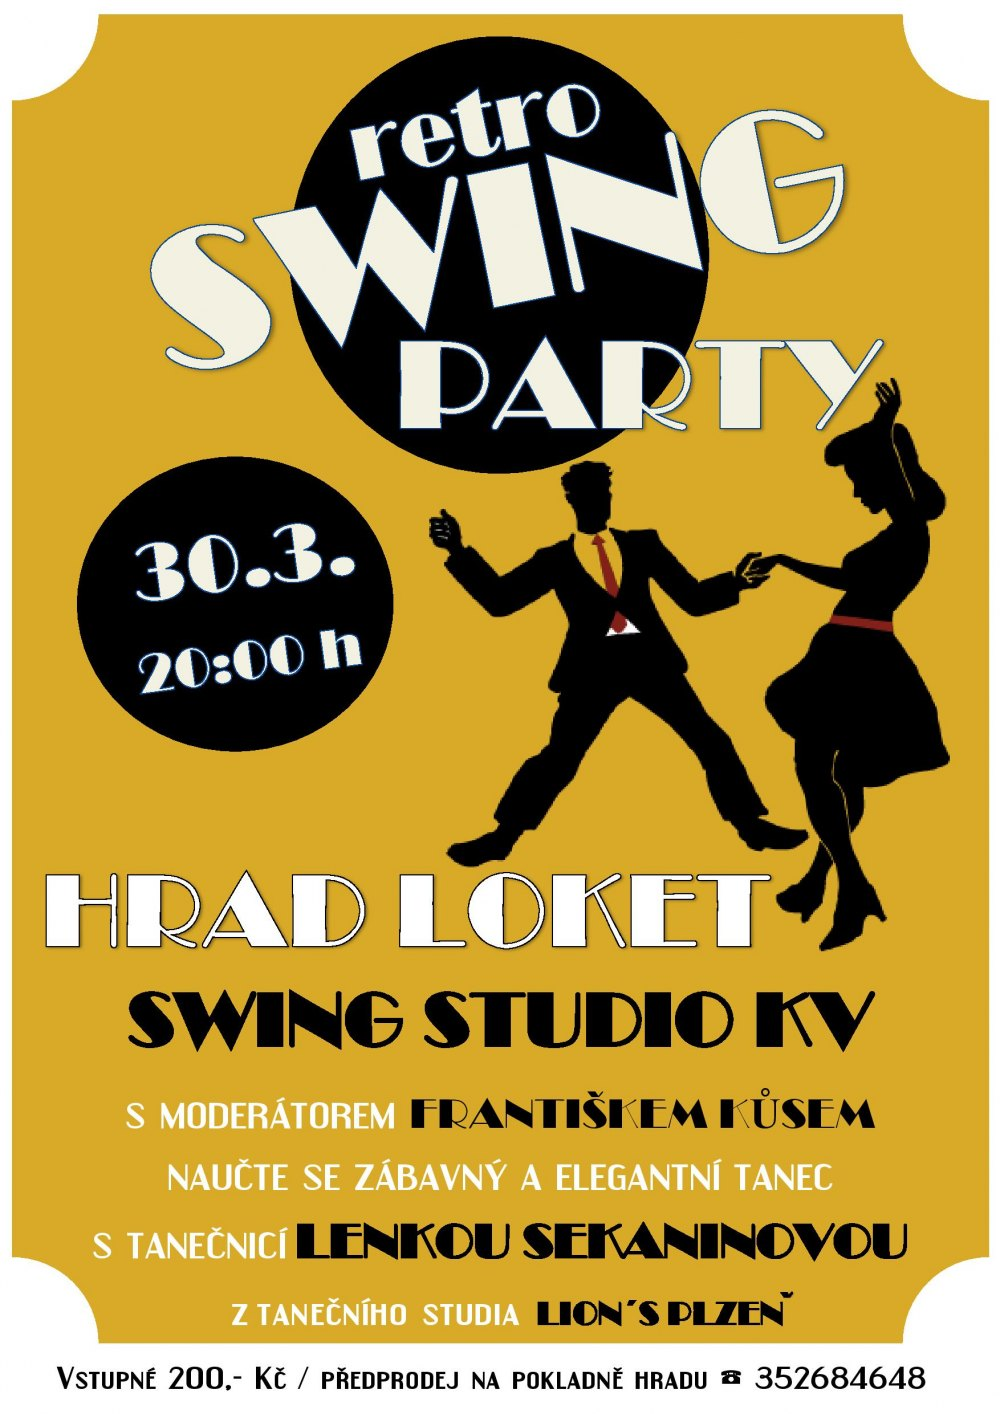 RETRO SWING PARTY